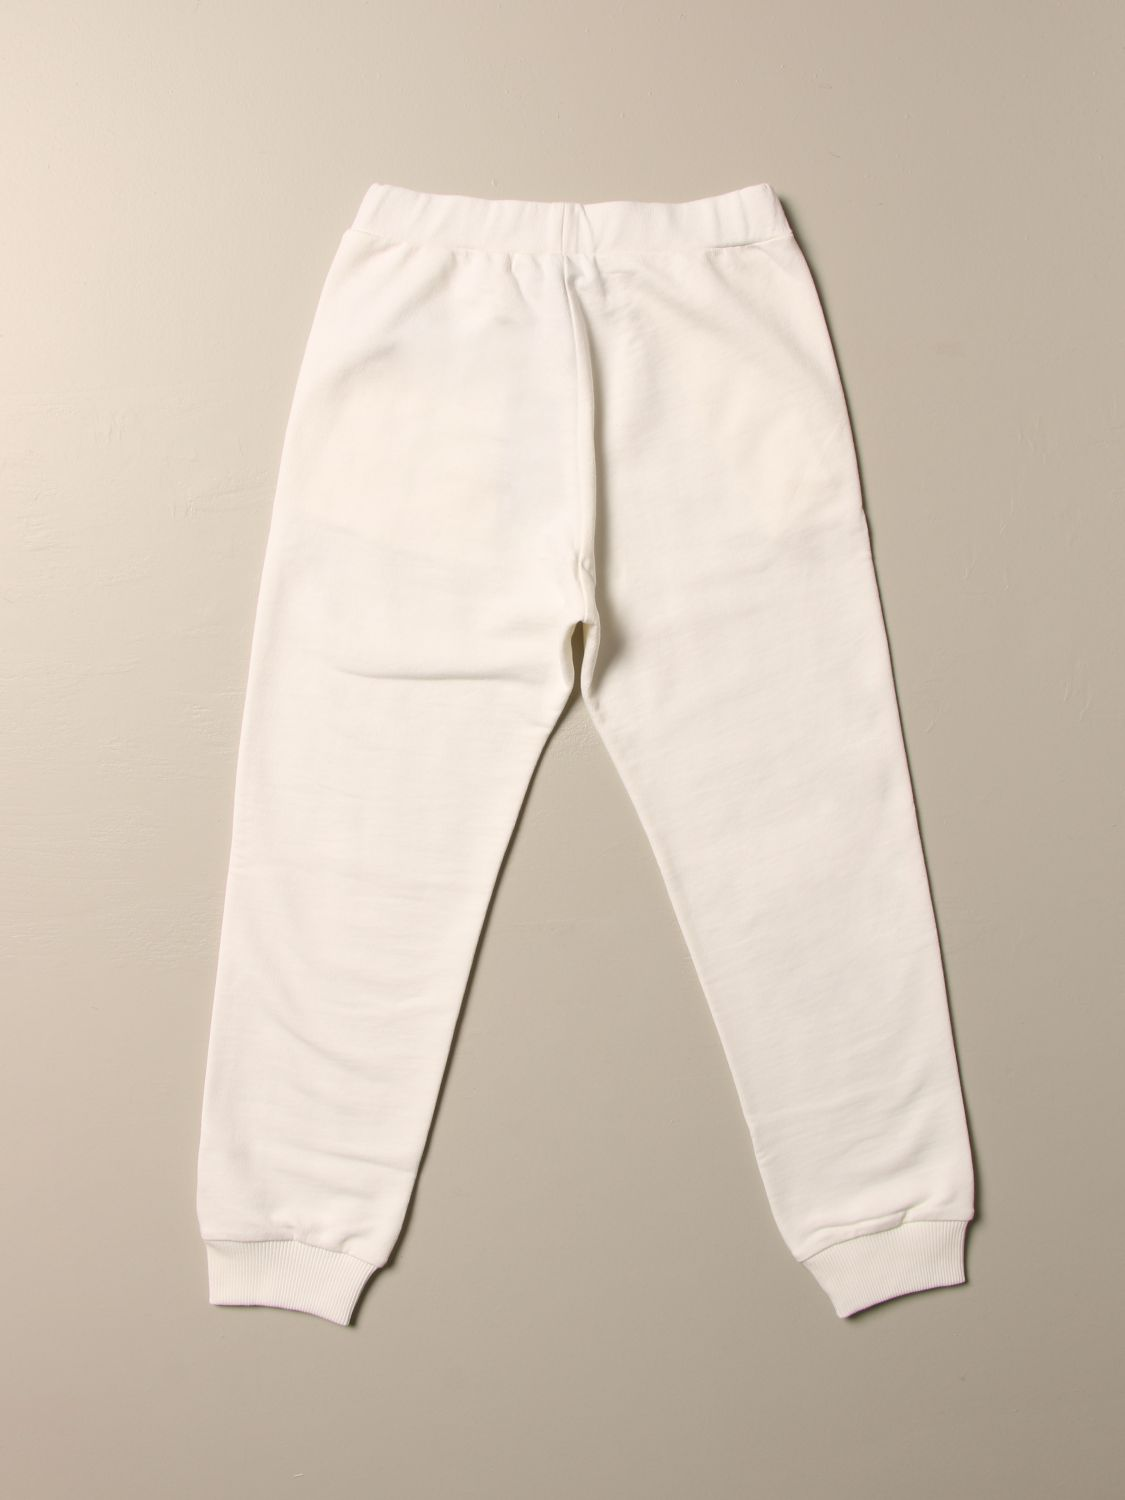 Pants Young Versace: Versace Young children's trousers white 2